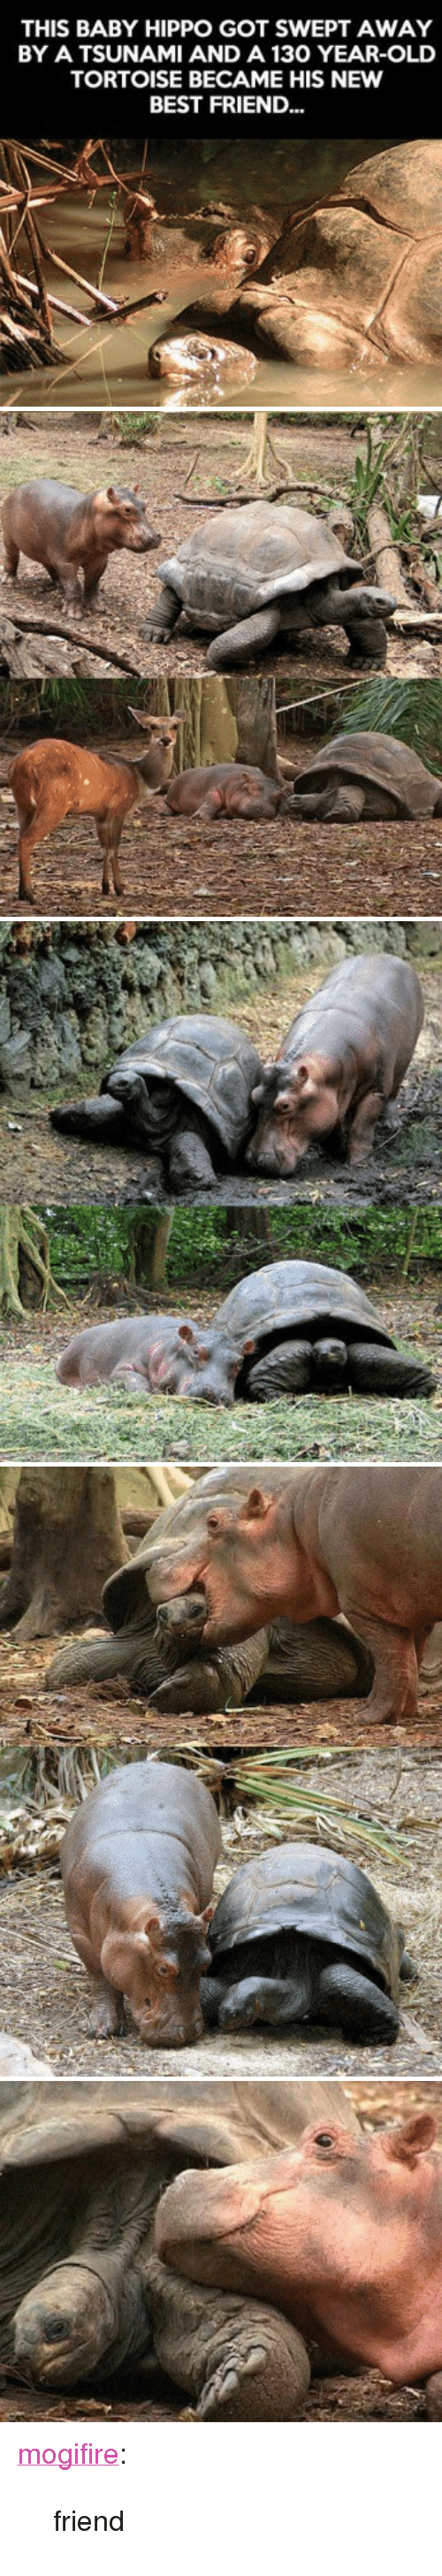 "Baby Hippo: THIS BABY HIPPO GOT SWEPT AWAY  BY A TSUNAMI AND A 130 YEAR-OLD  TORTOISE BECAME HIS NEW  BEST FRIEND... <p><a href=""http://mogifire.tumblr.com/post/157412233739/friend"" class=""tumblr_blog"">mogifire</a>:</p><blockquote><p>friend<br/></p></blockquote>"